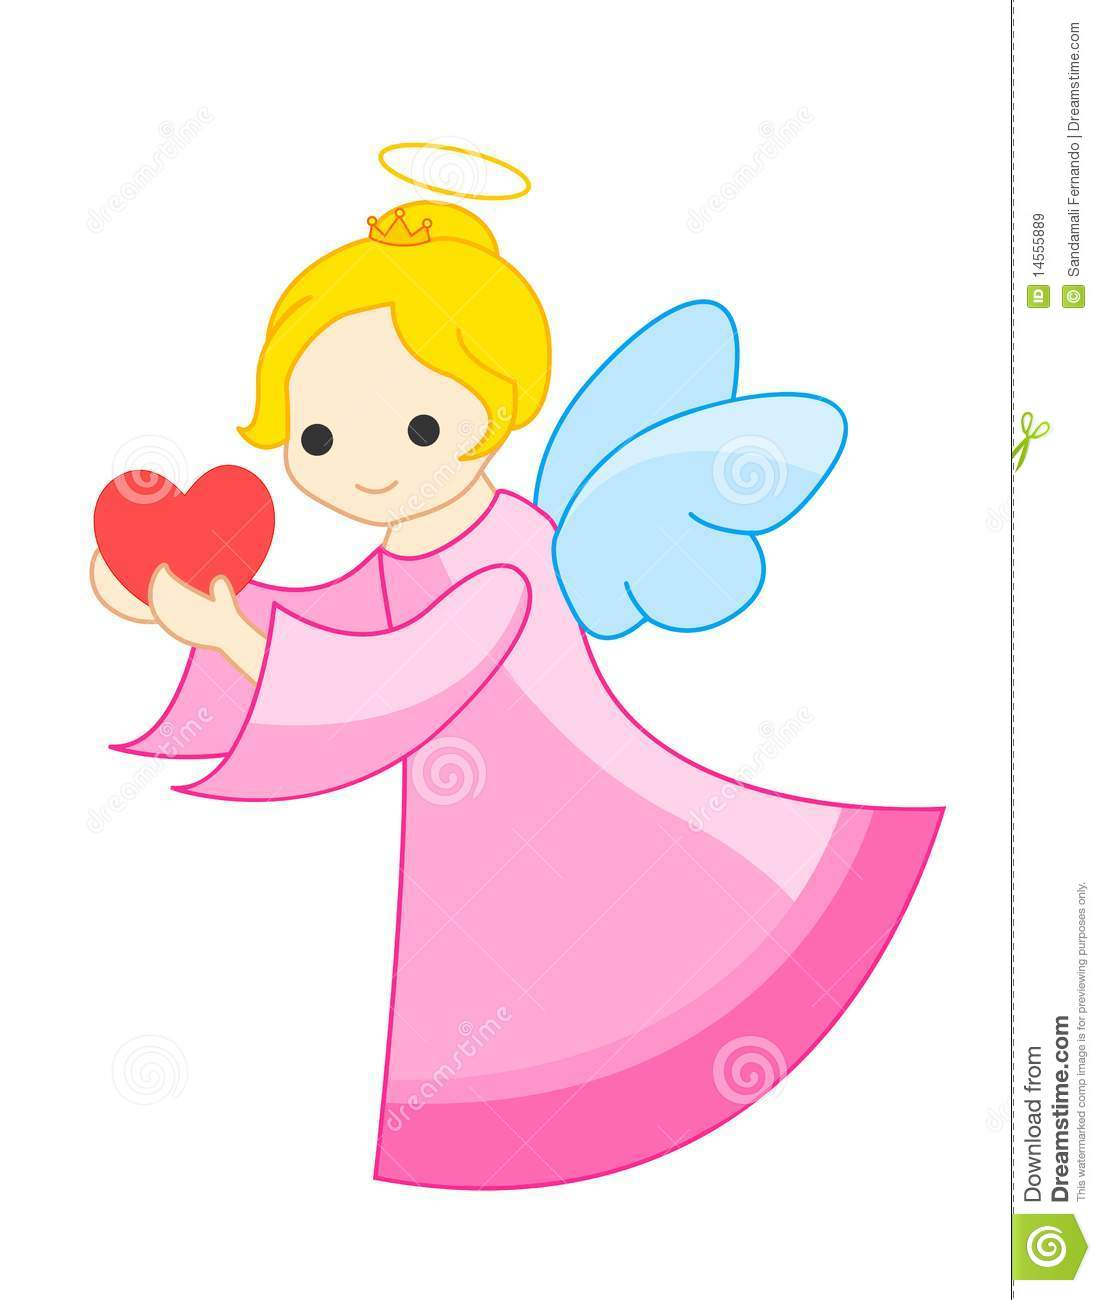 Angel cute. Clipart station